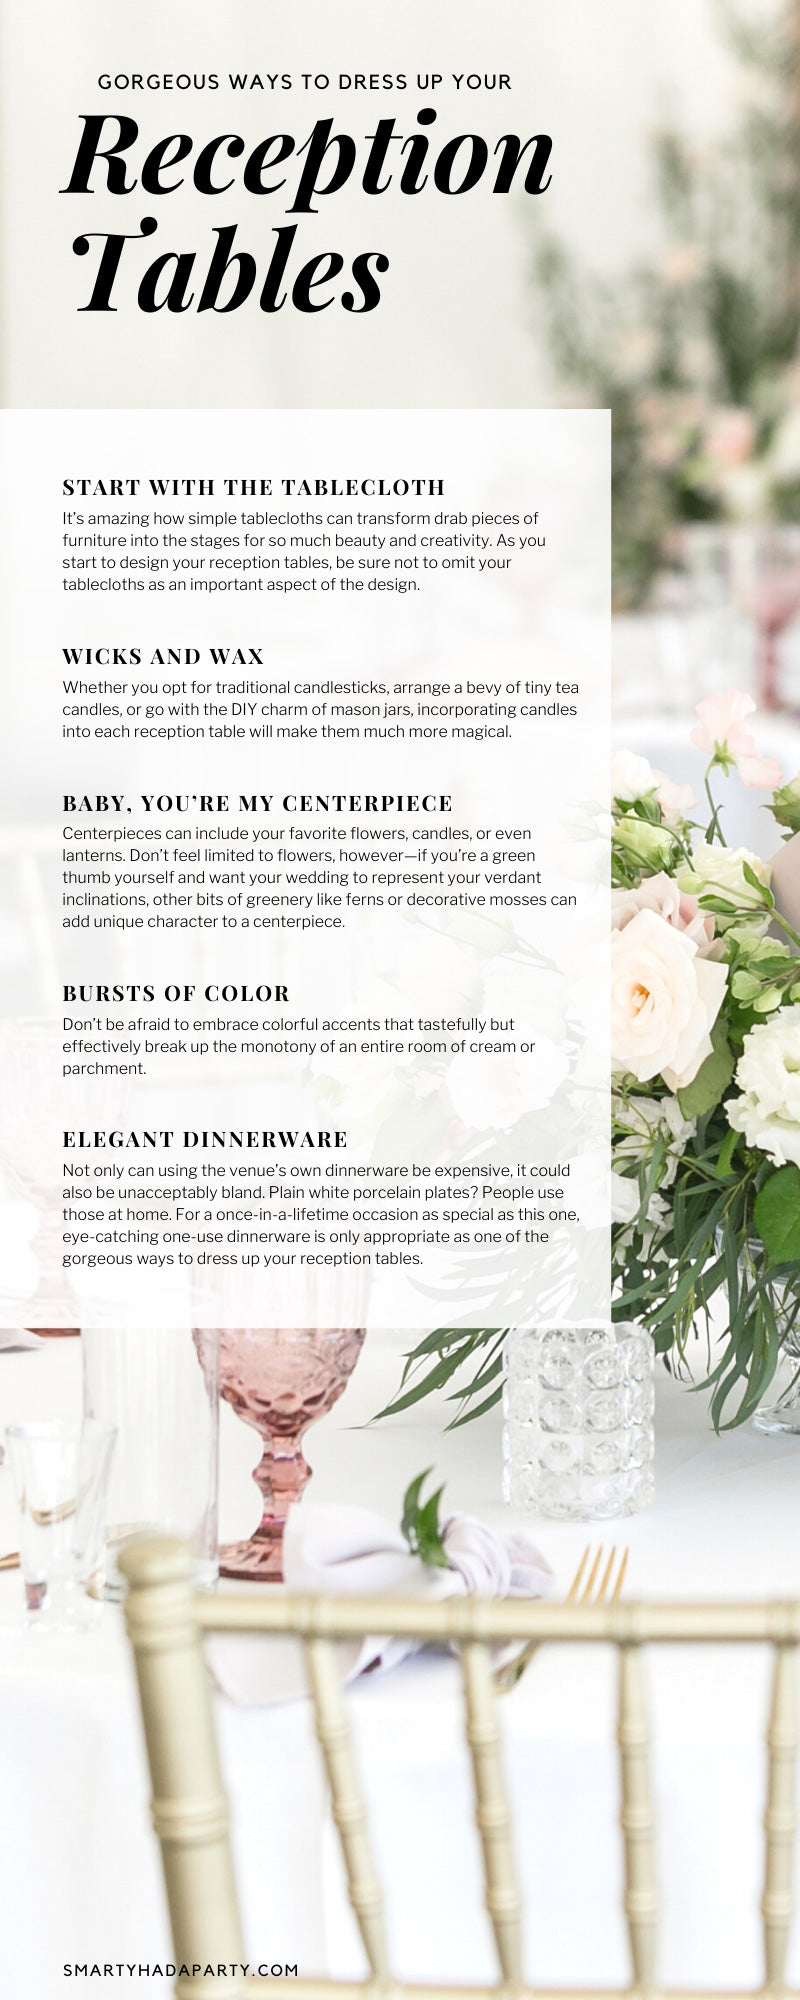 Gorgeous Ways To Dress Up Your Reception Tables